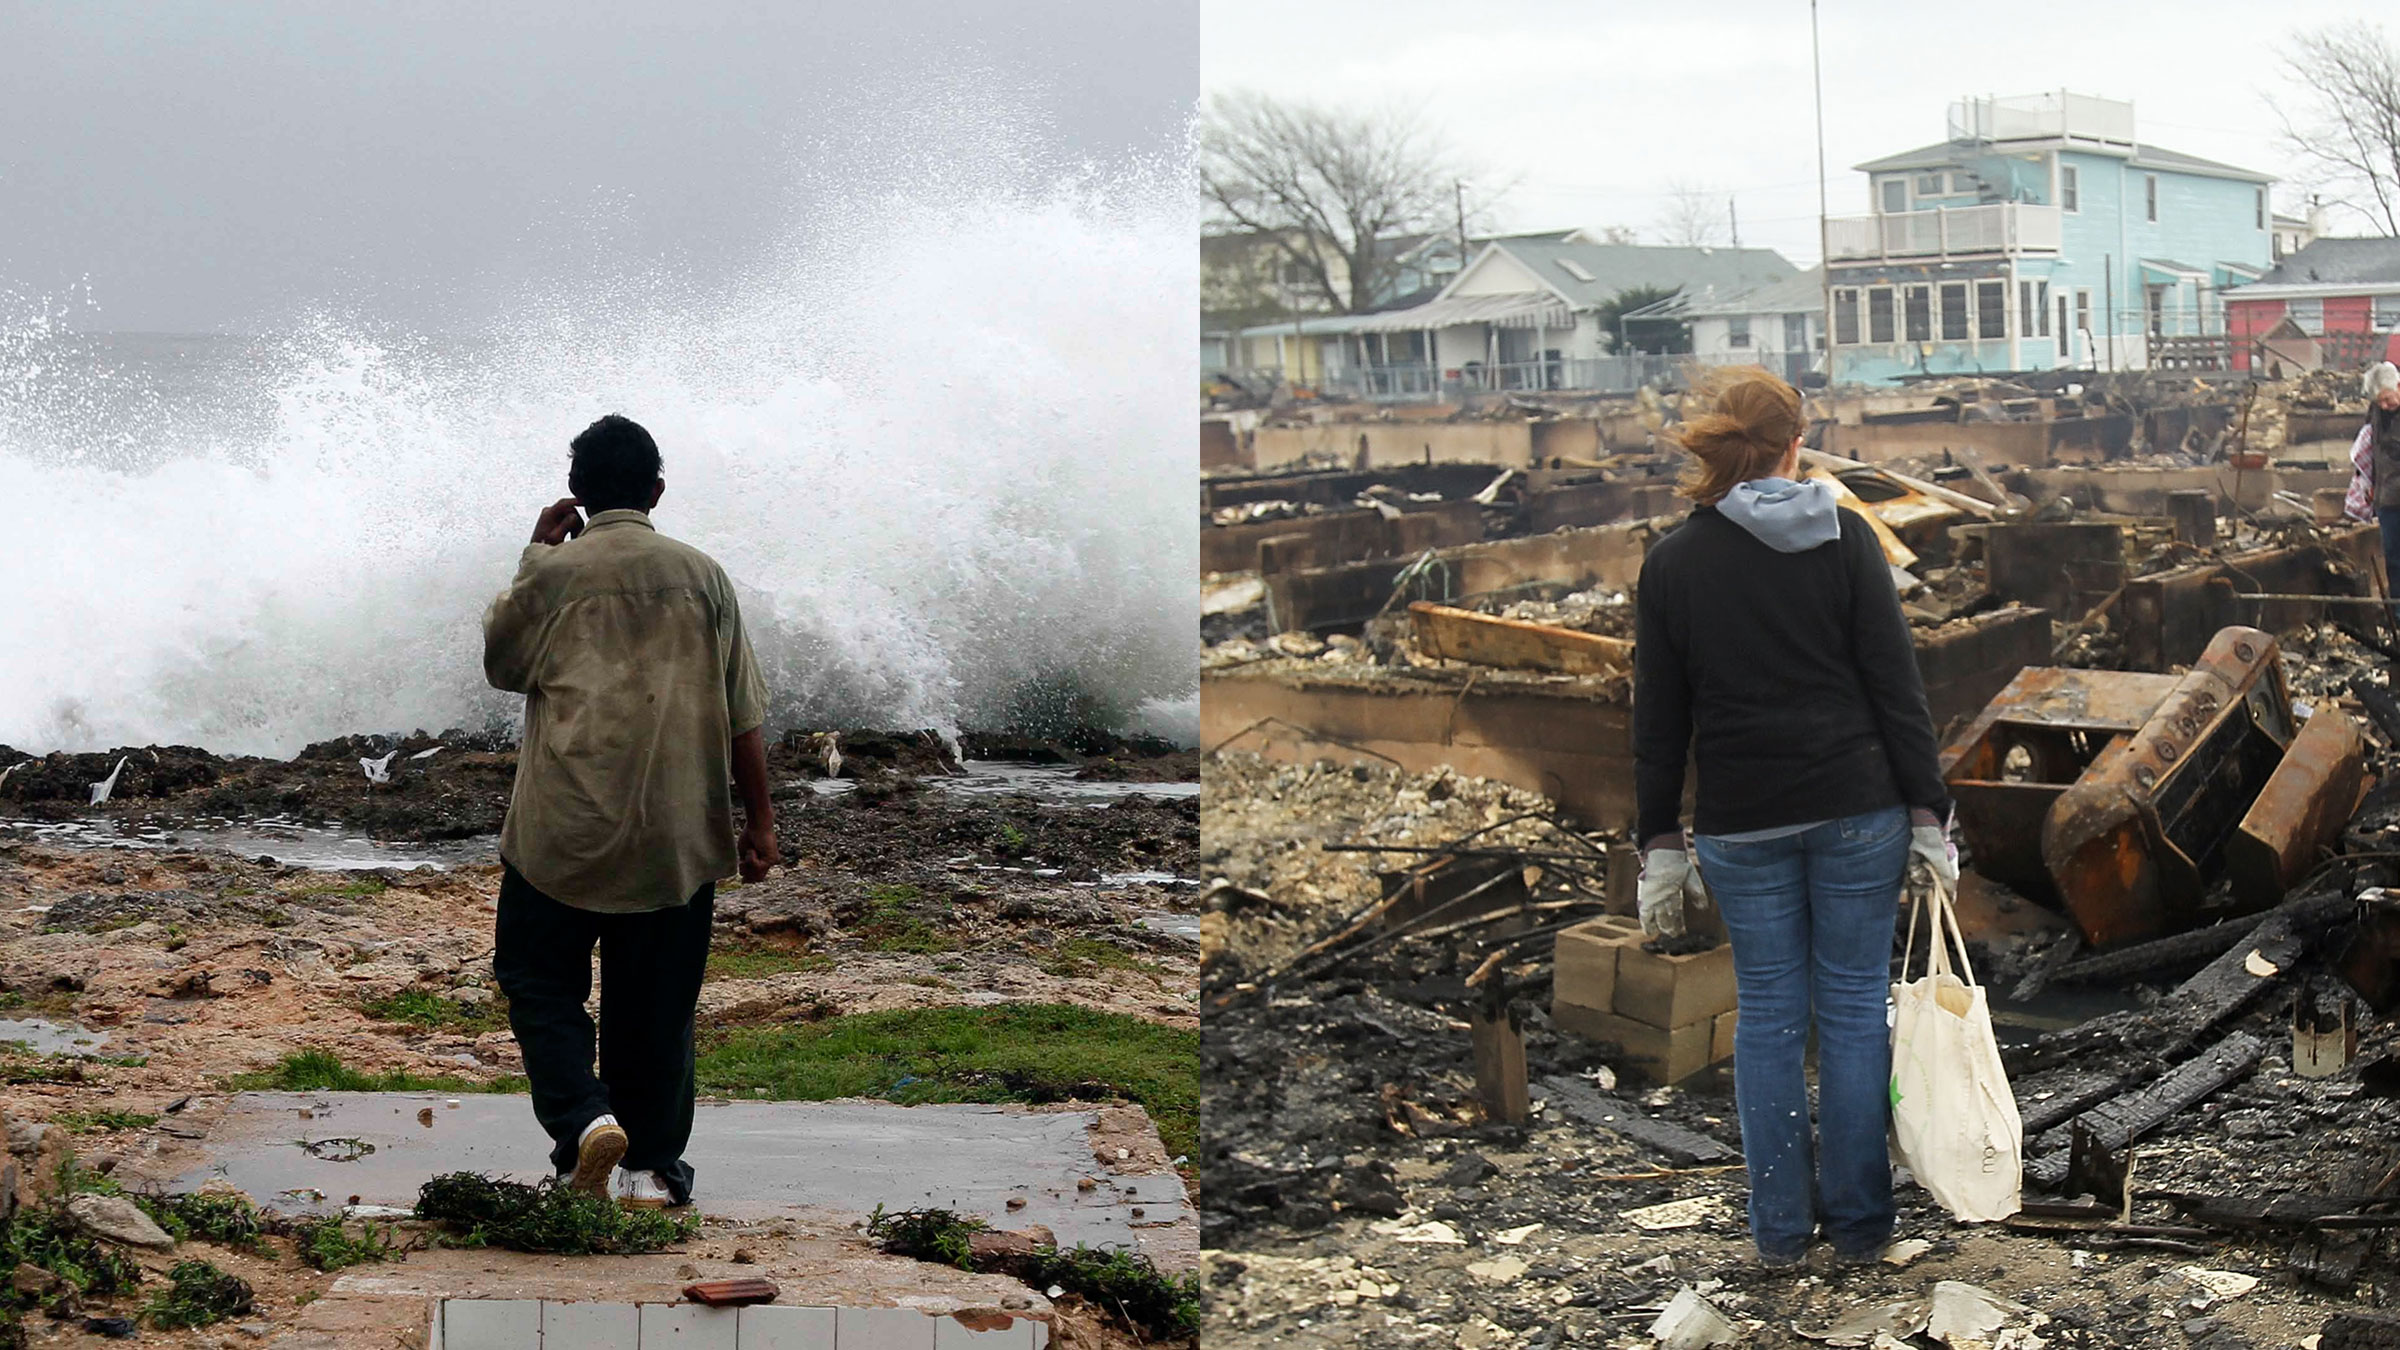 The scene in  Gibara, Cuba and Breezy Point, Queens, New York City